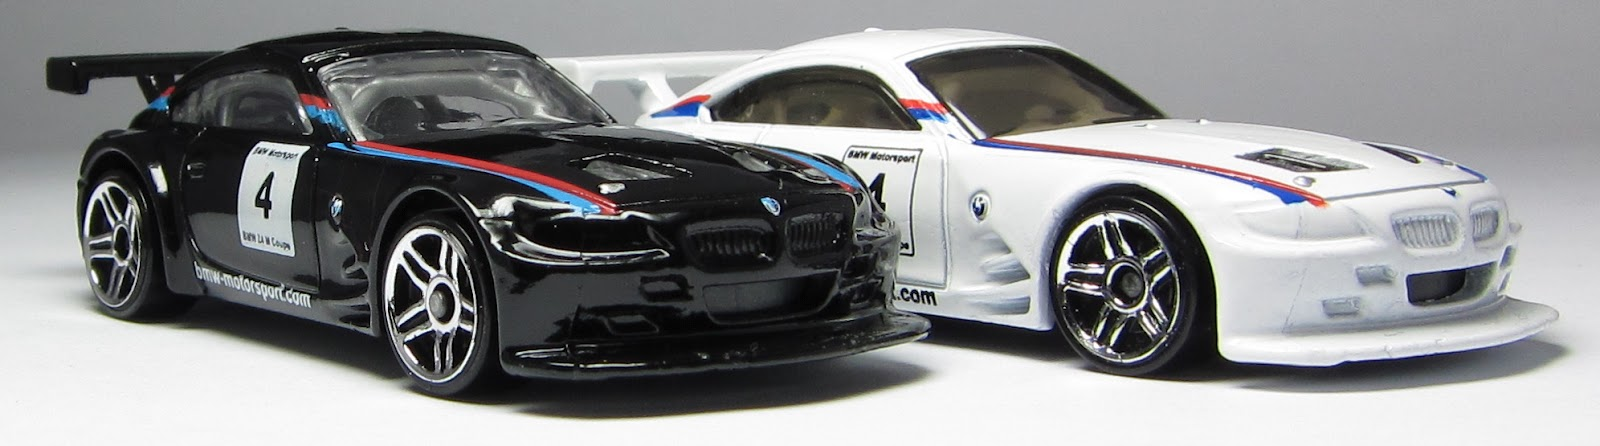 First Look Hw Bmw Z4 M The Lamley Group